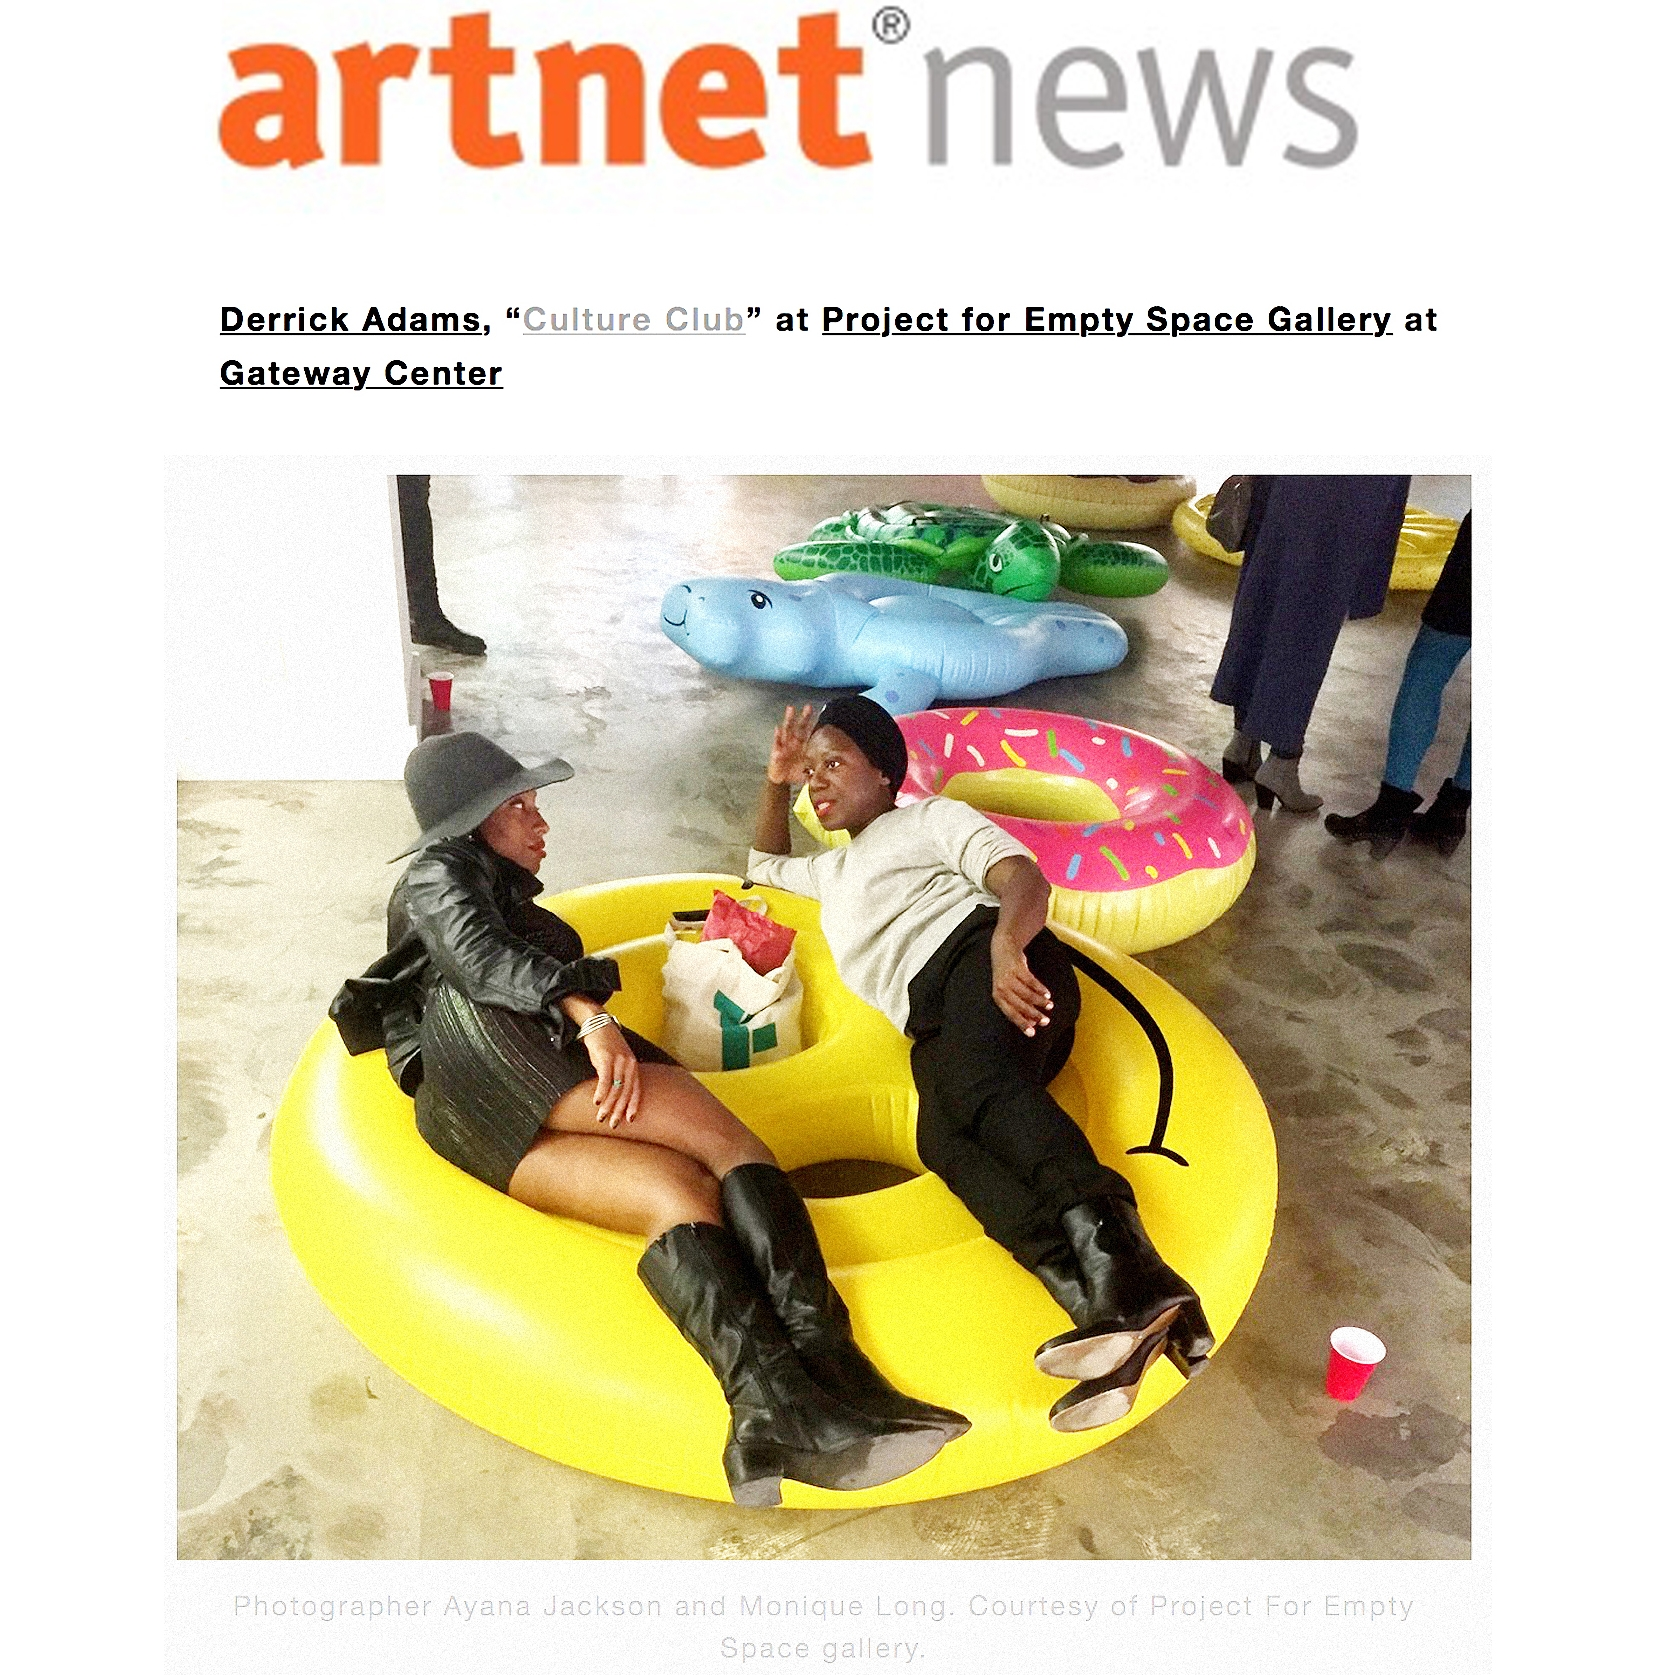 artnet News thumb 16.jpg